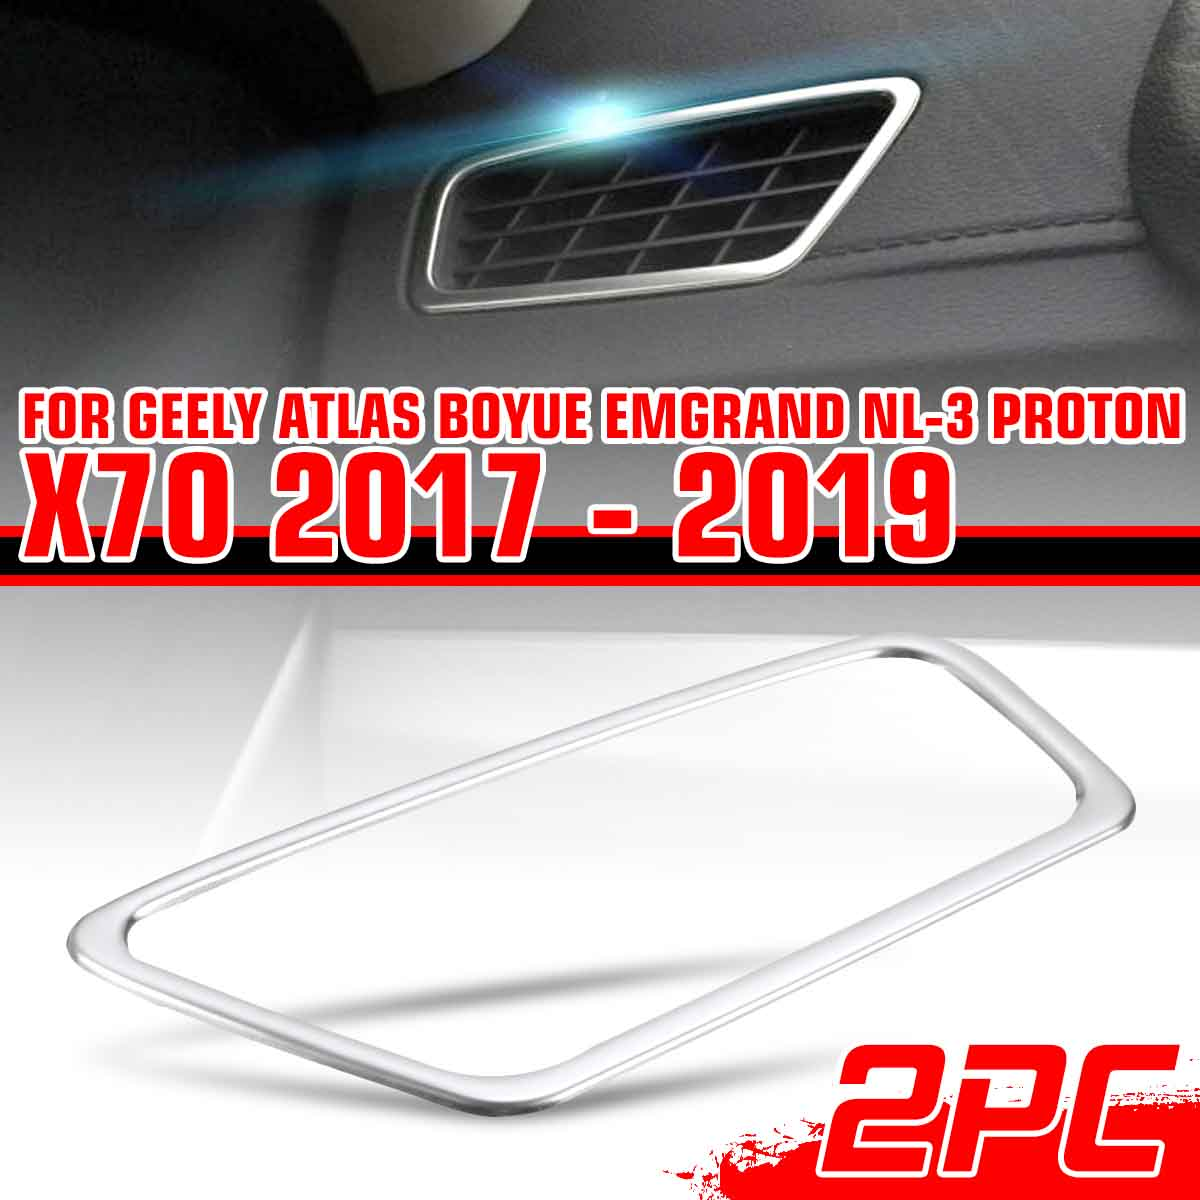 2X Car Dashboard Air Outlet Vent Cover Trim Frame Sticker Stainless For <font><b>Geely</b></font> <font><b>Atlas</b></font> Boyue Emgrand NL-3 Proton X70 2017 2018 <font><b>2019</b></font> image